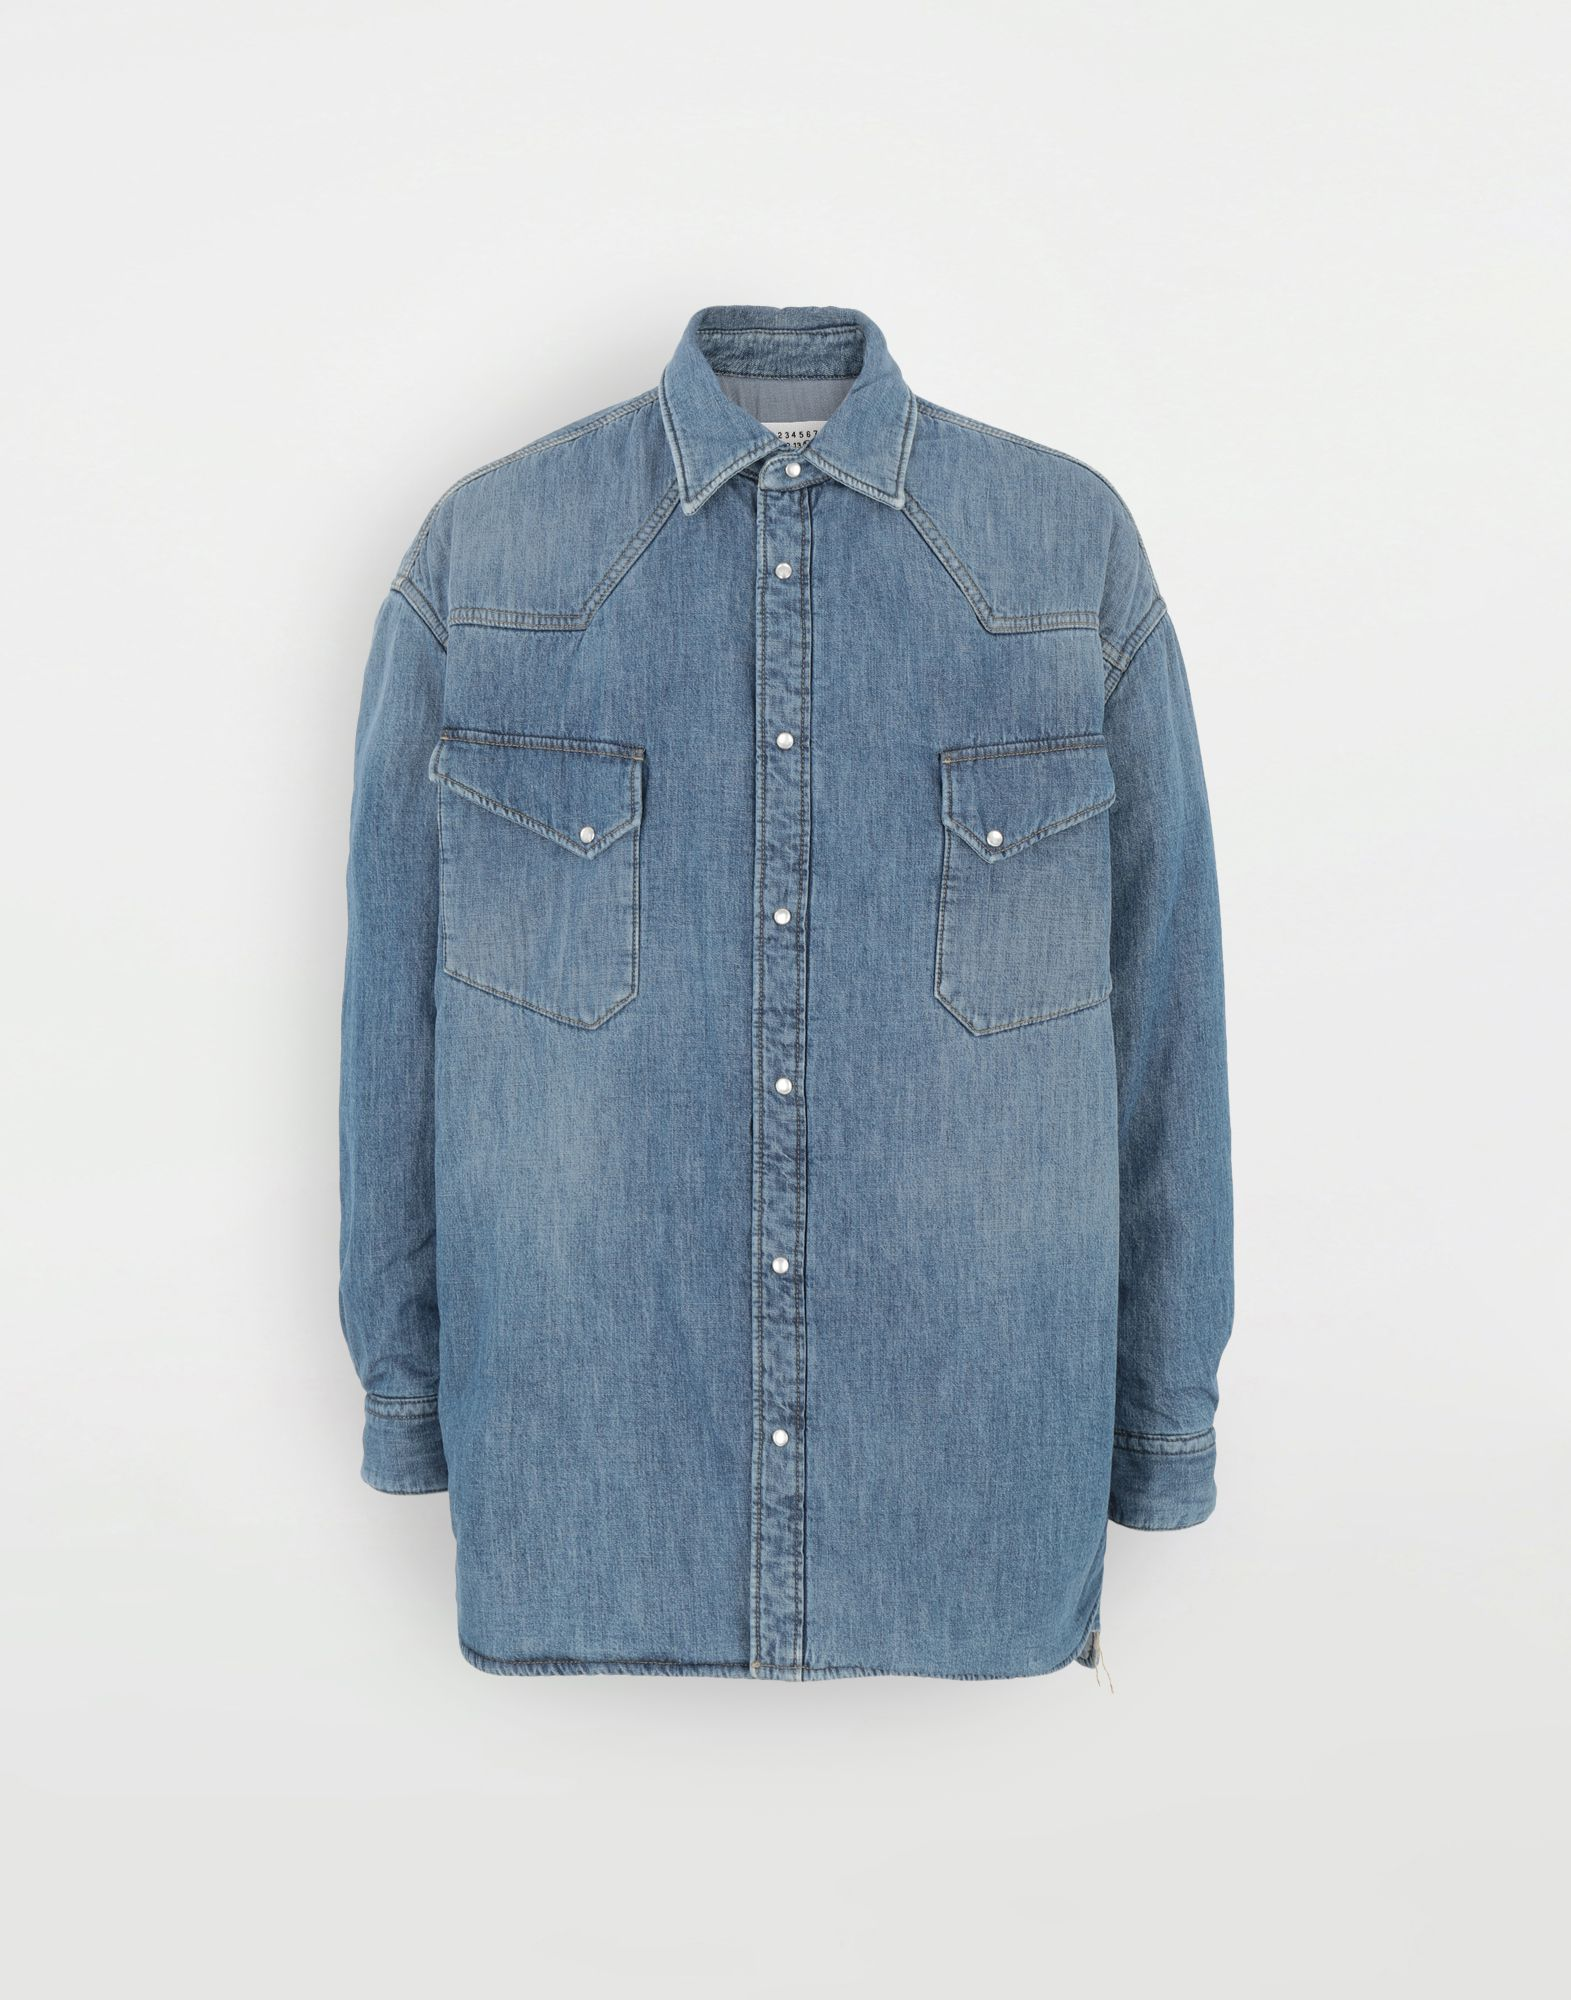 MAISON MARGIELA Oversized denim shirt Denim shirt Man f